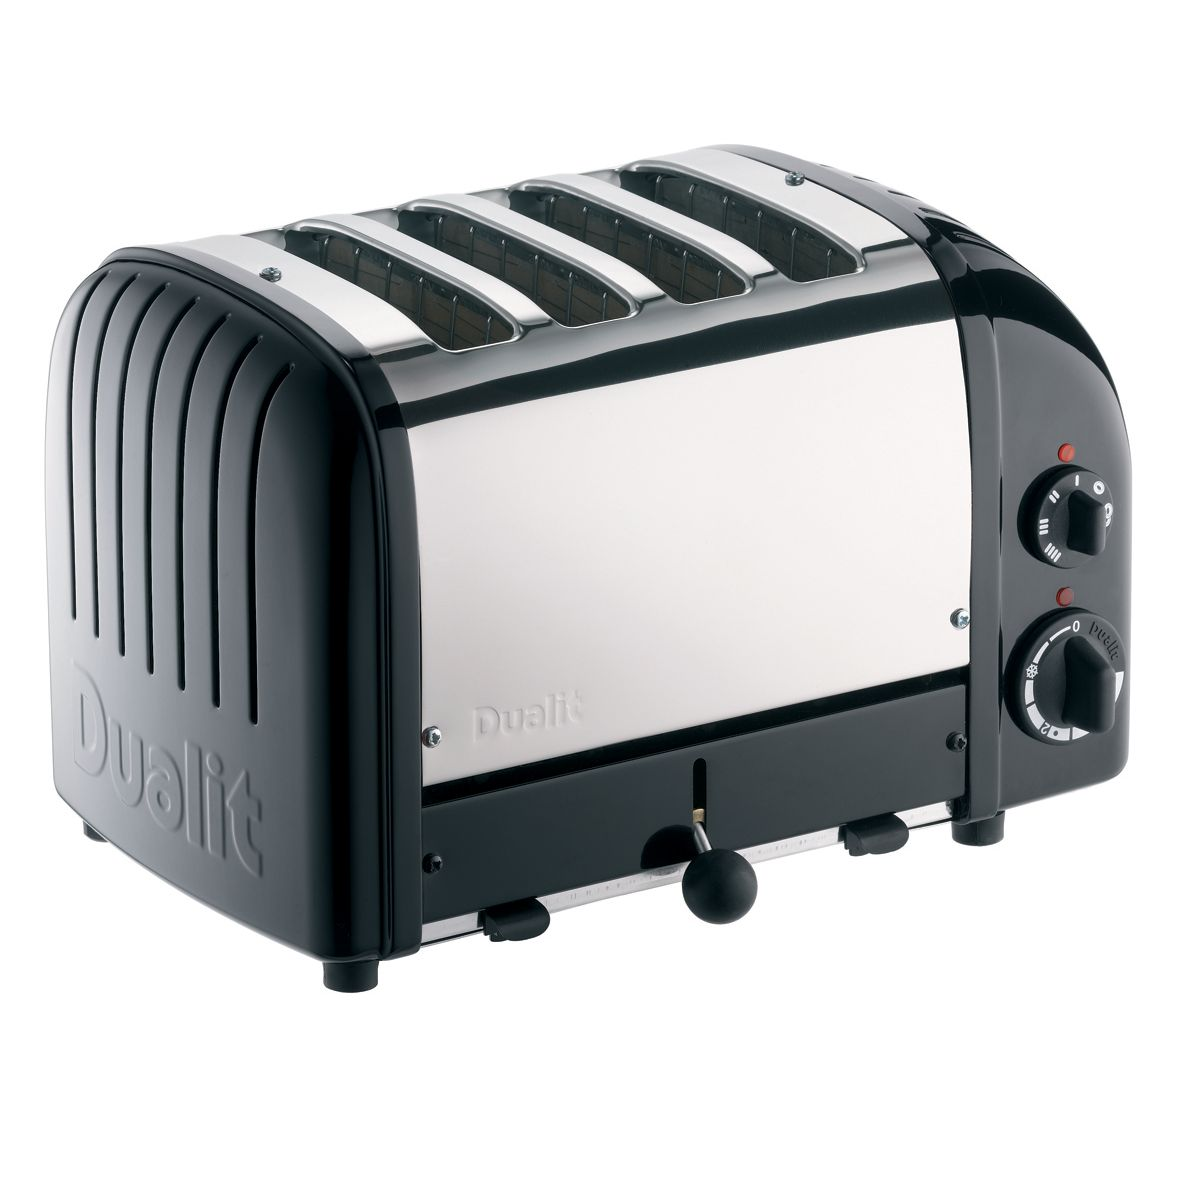 Dualit NewGen Toaster, 4-Slice, Black at JohnLewis